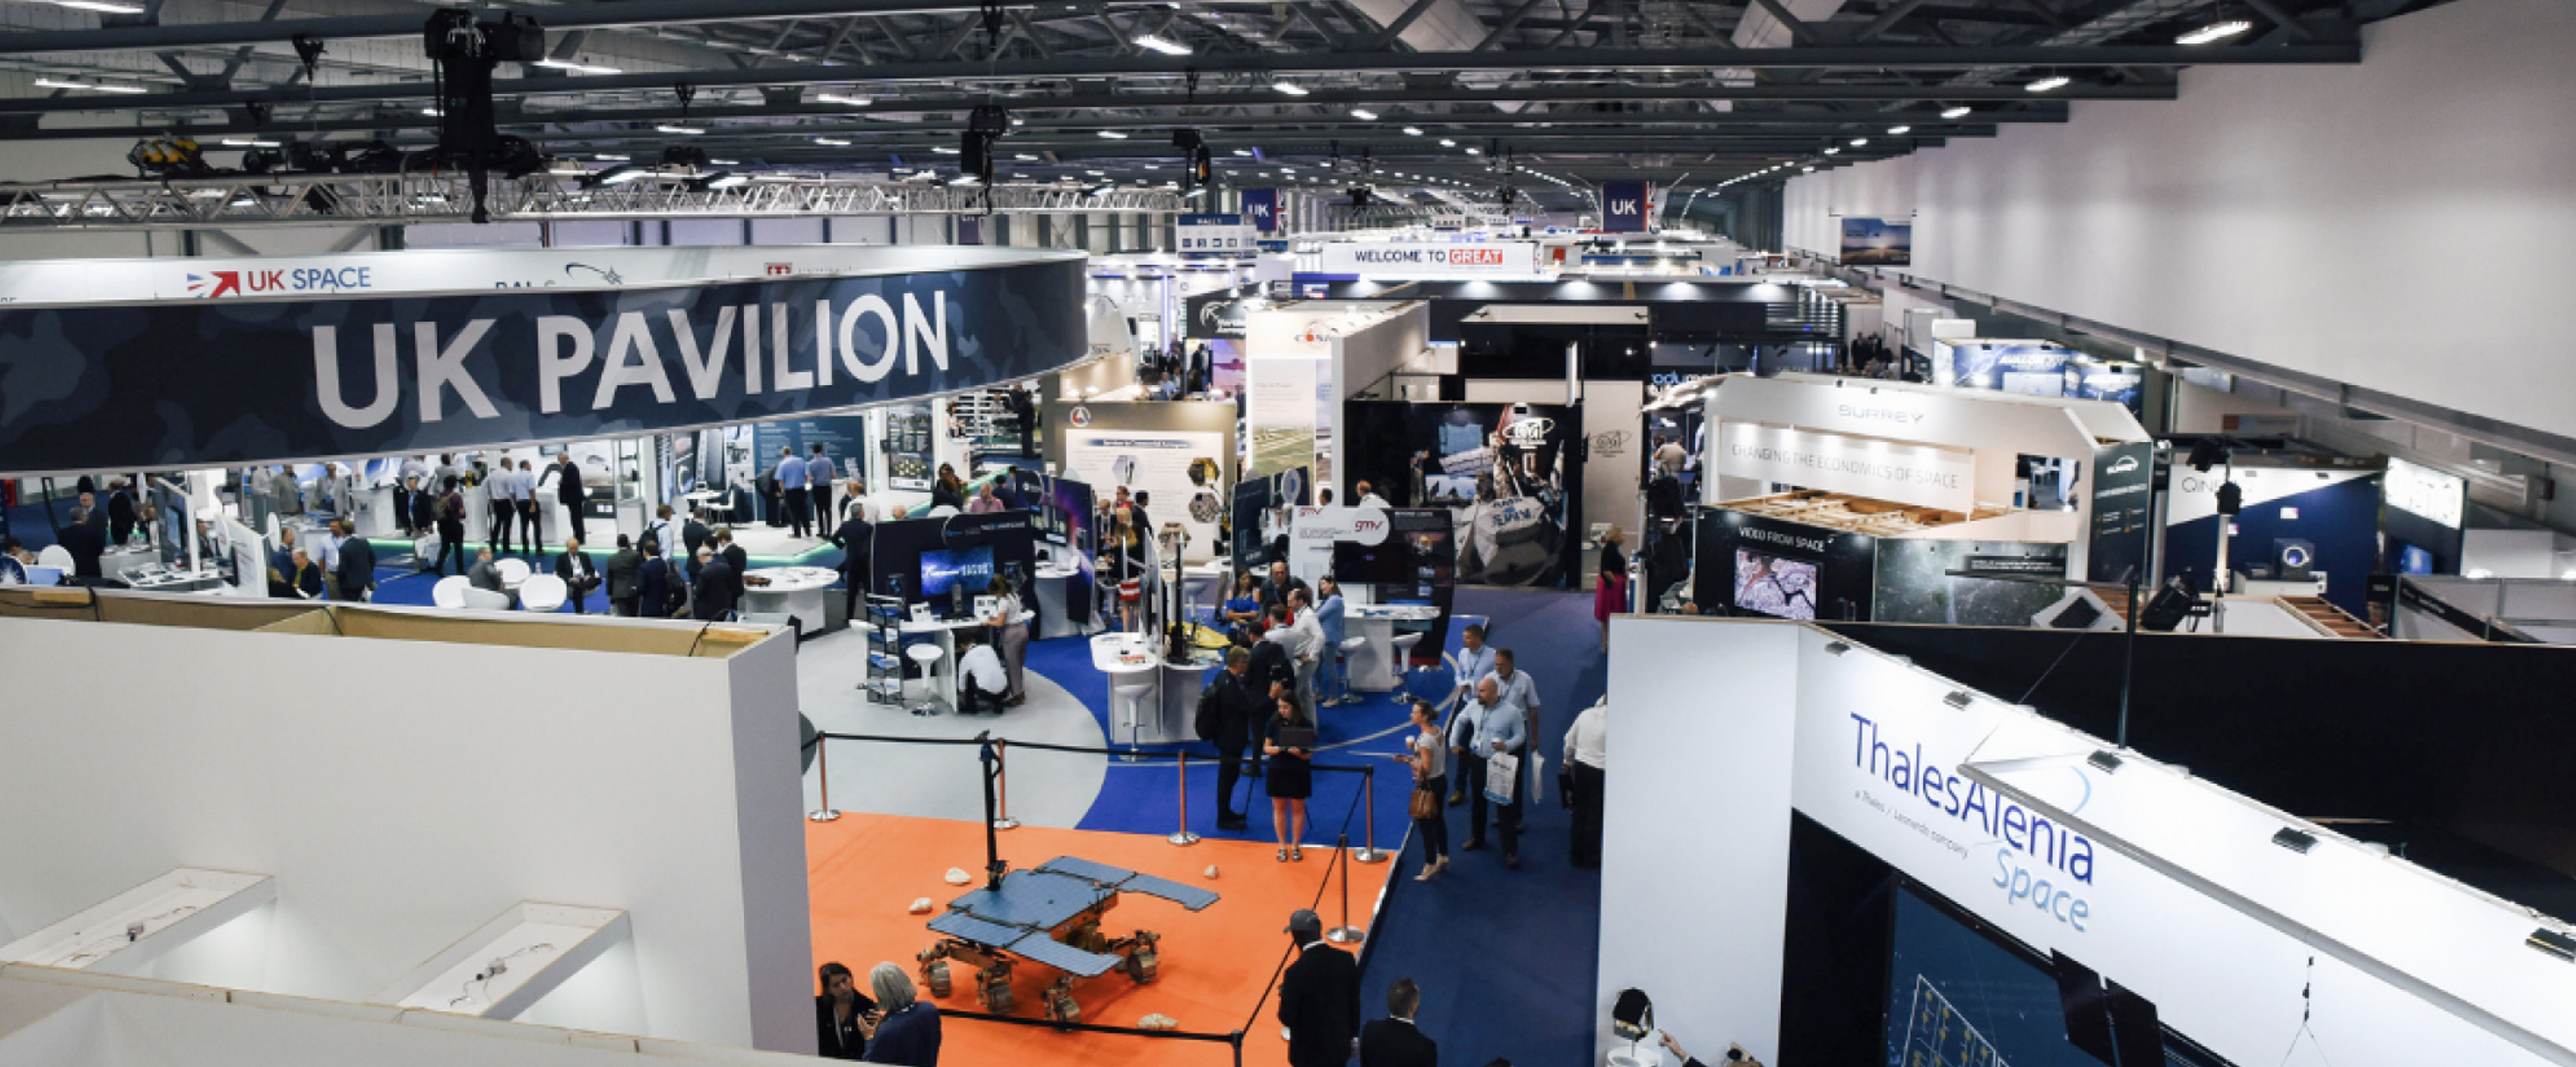 Horizon Technologies will be exhibiting at SPACE-COMM expo at the Farnborough International Exhibition and Conference Centre